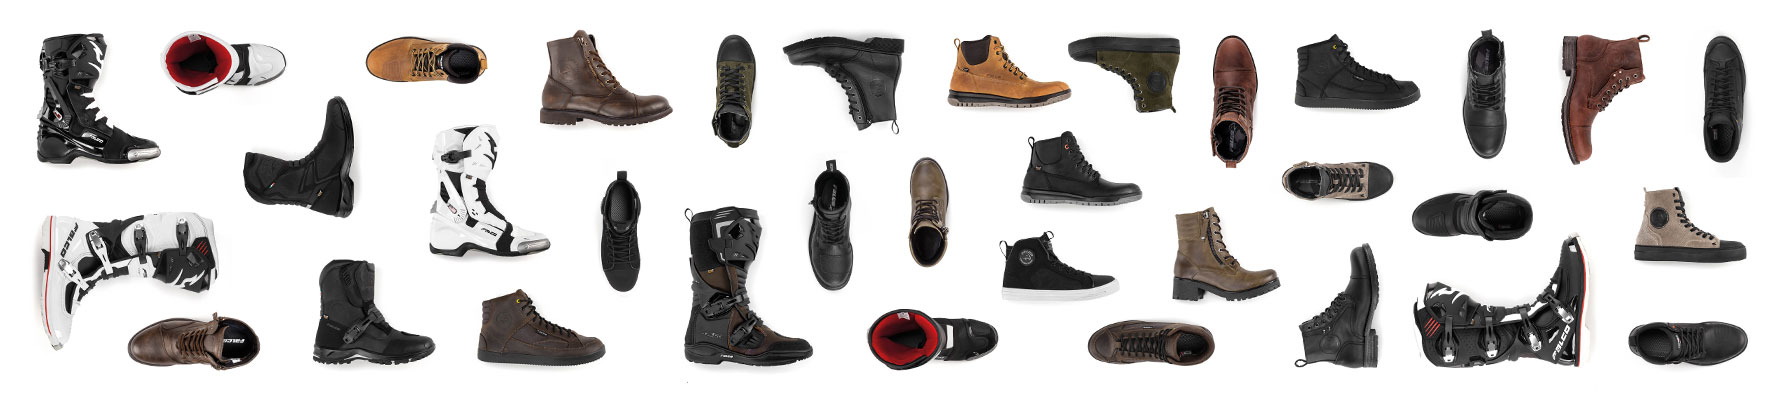 Gianni Falco Boots New Website